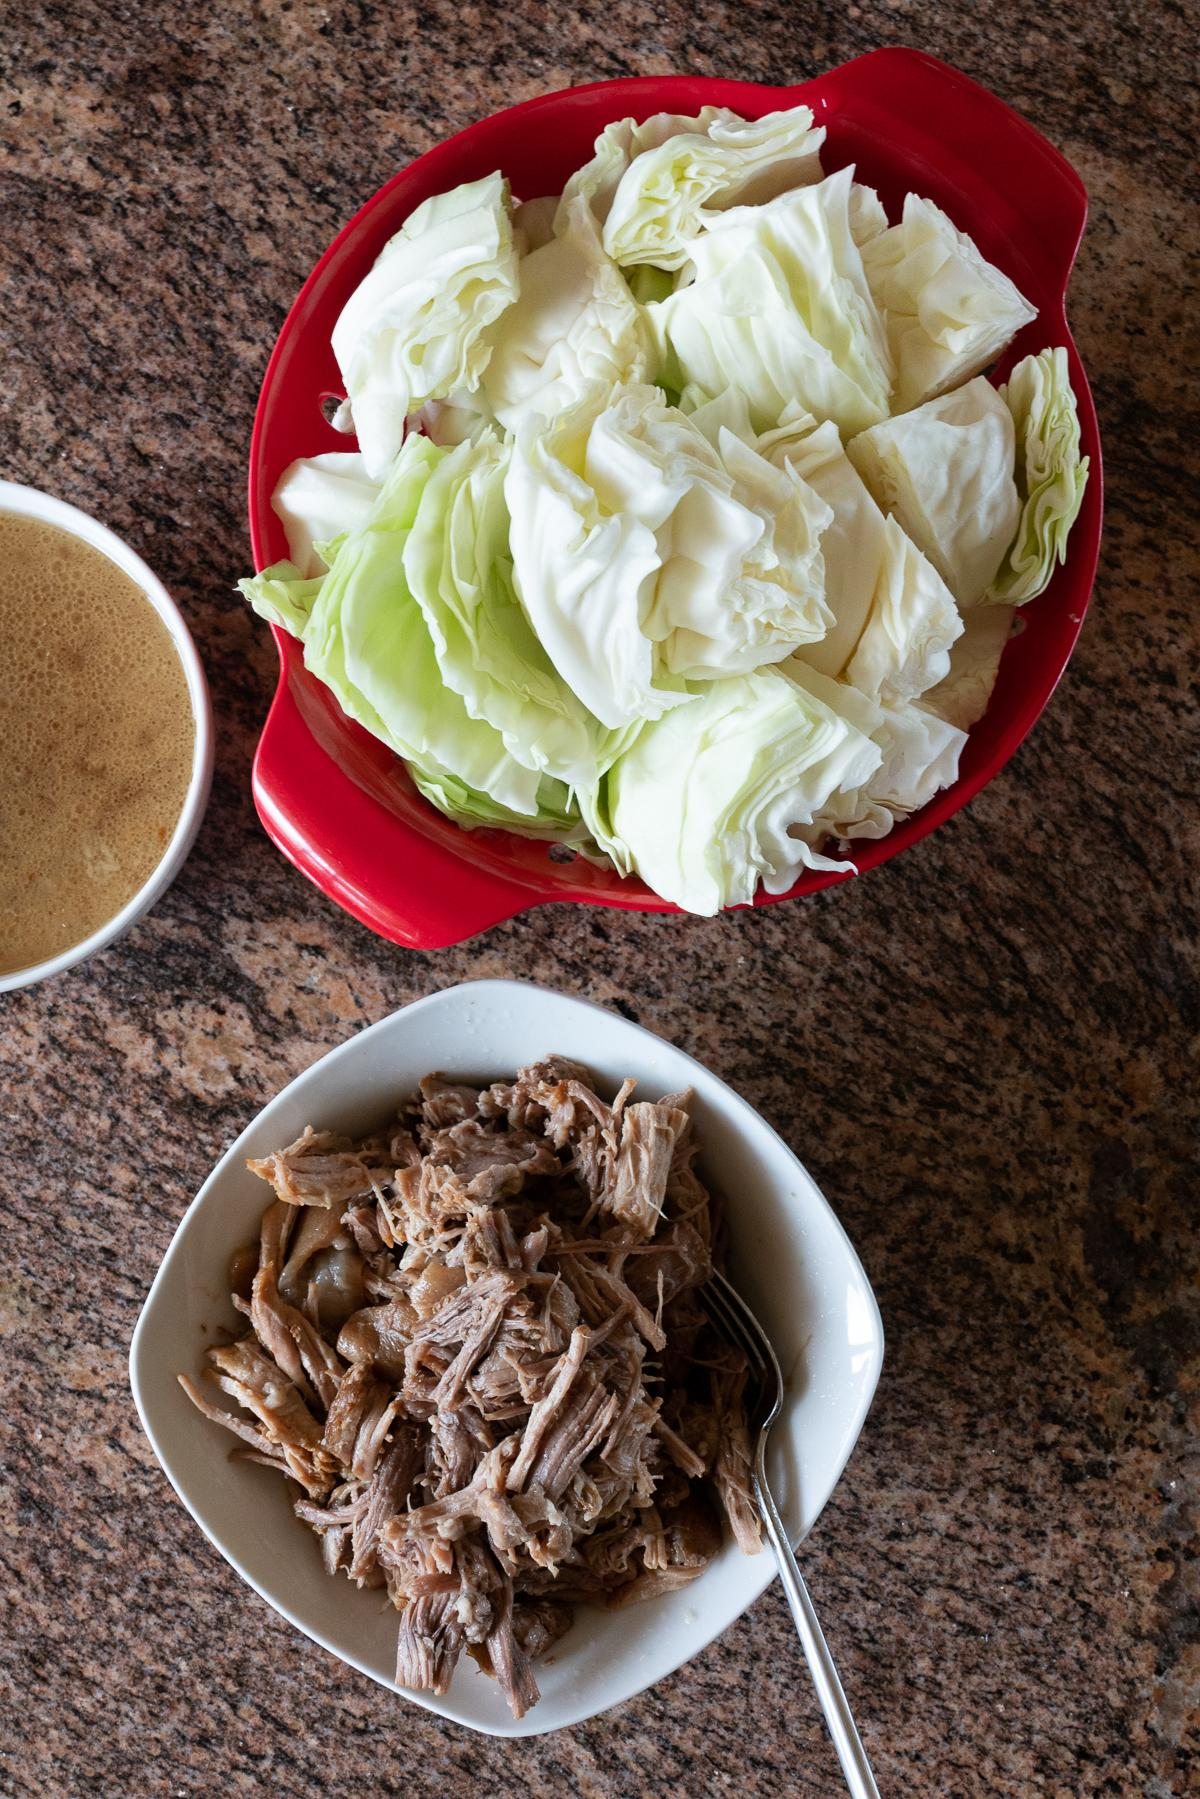 Ingredients for Kalua Pork and Cabbage: kalua pork, cabbage, and kalua pork drippings/juices (or chicken broth)